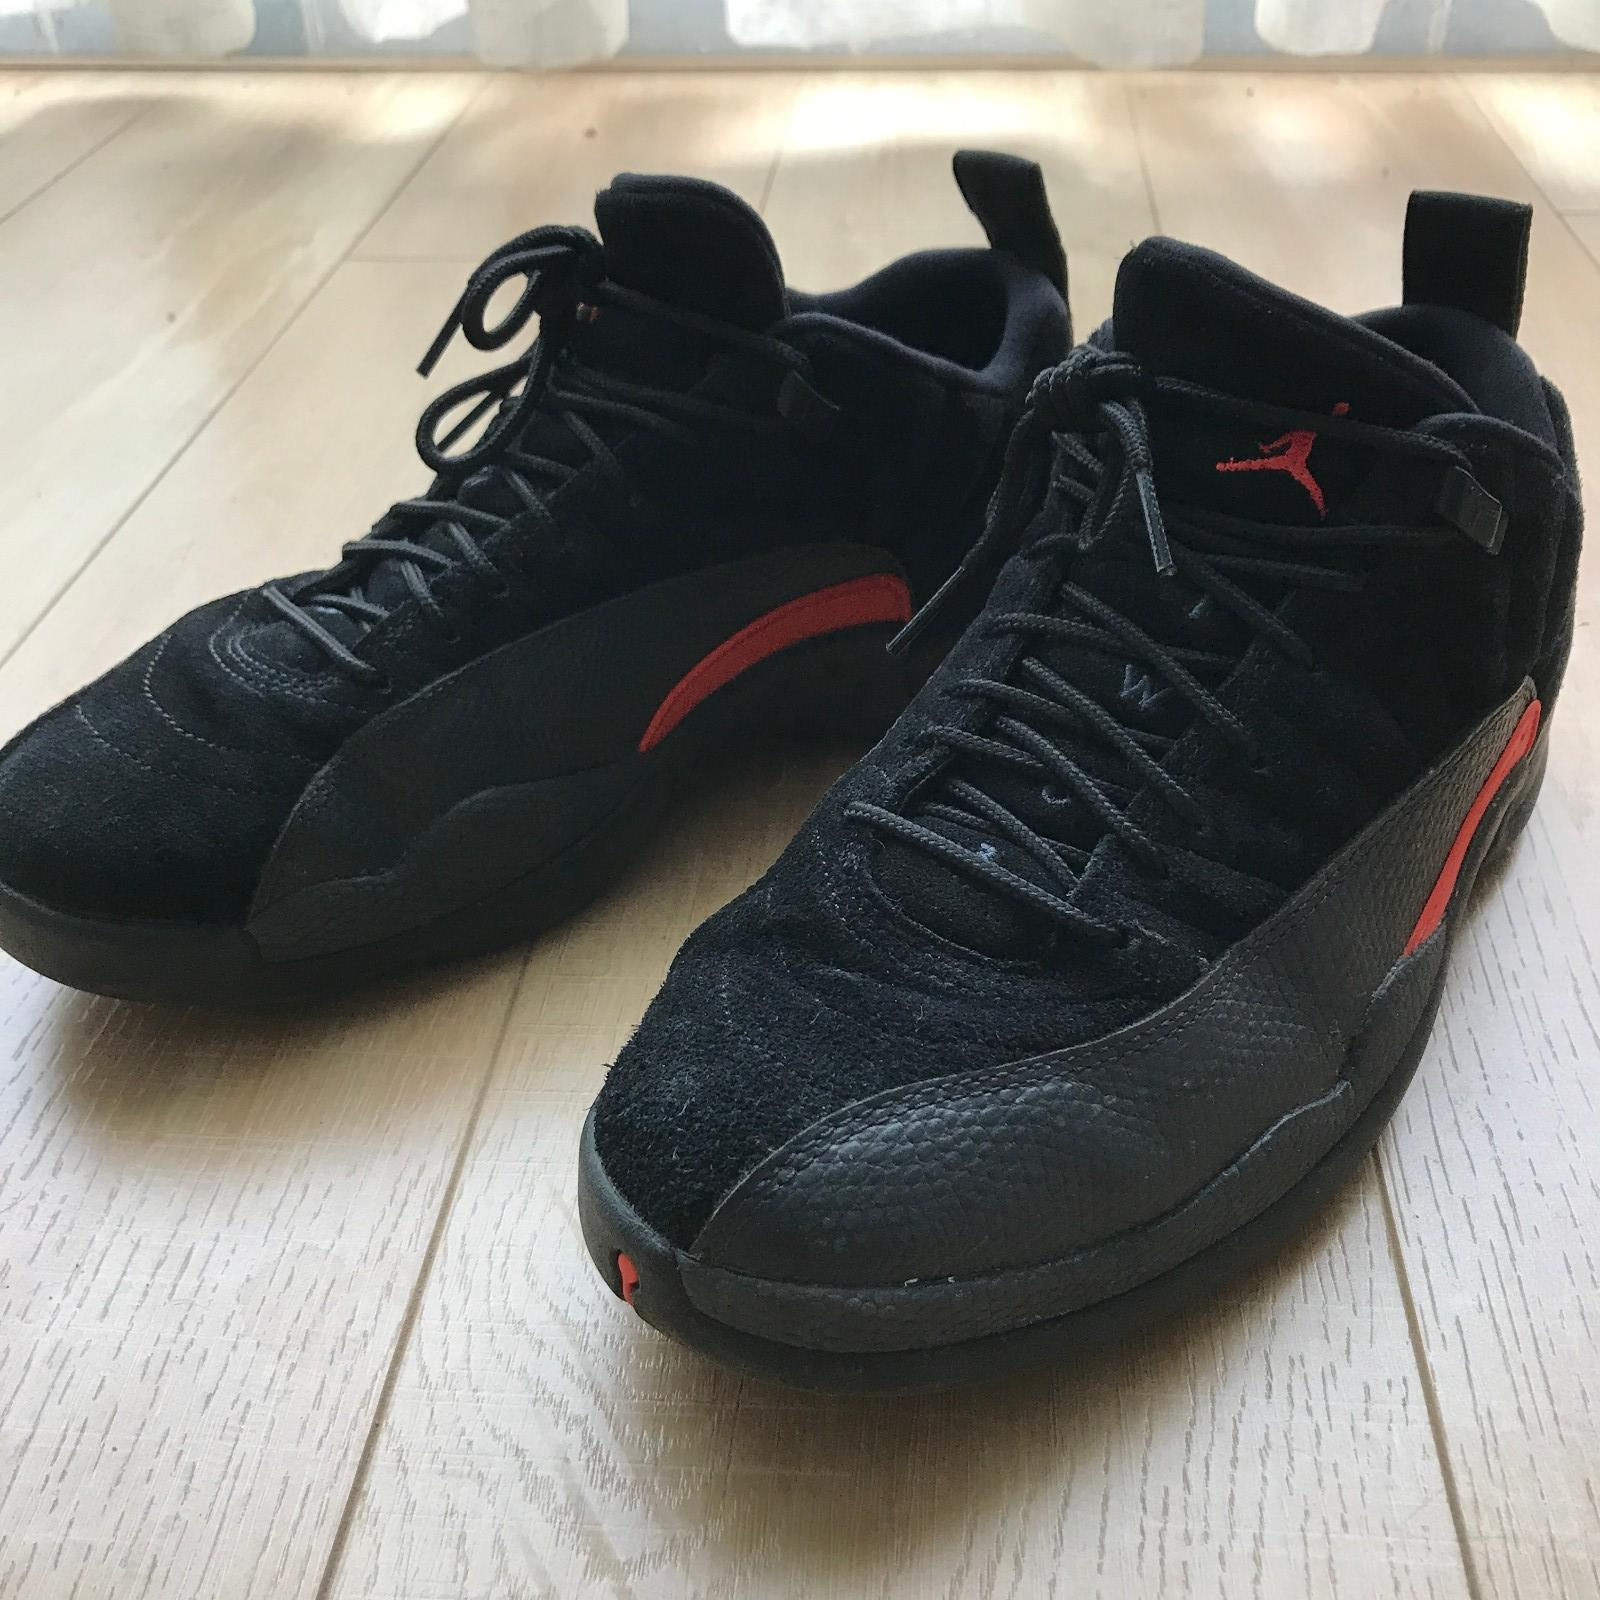 Air Jordan 12 Low - Black Orange Storm